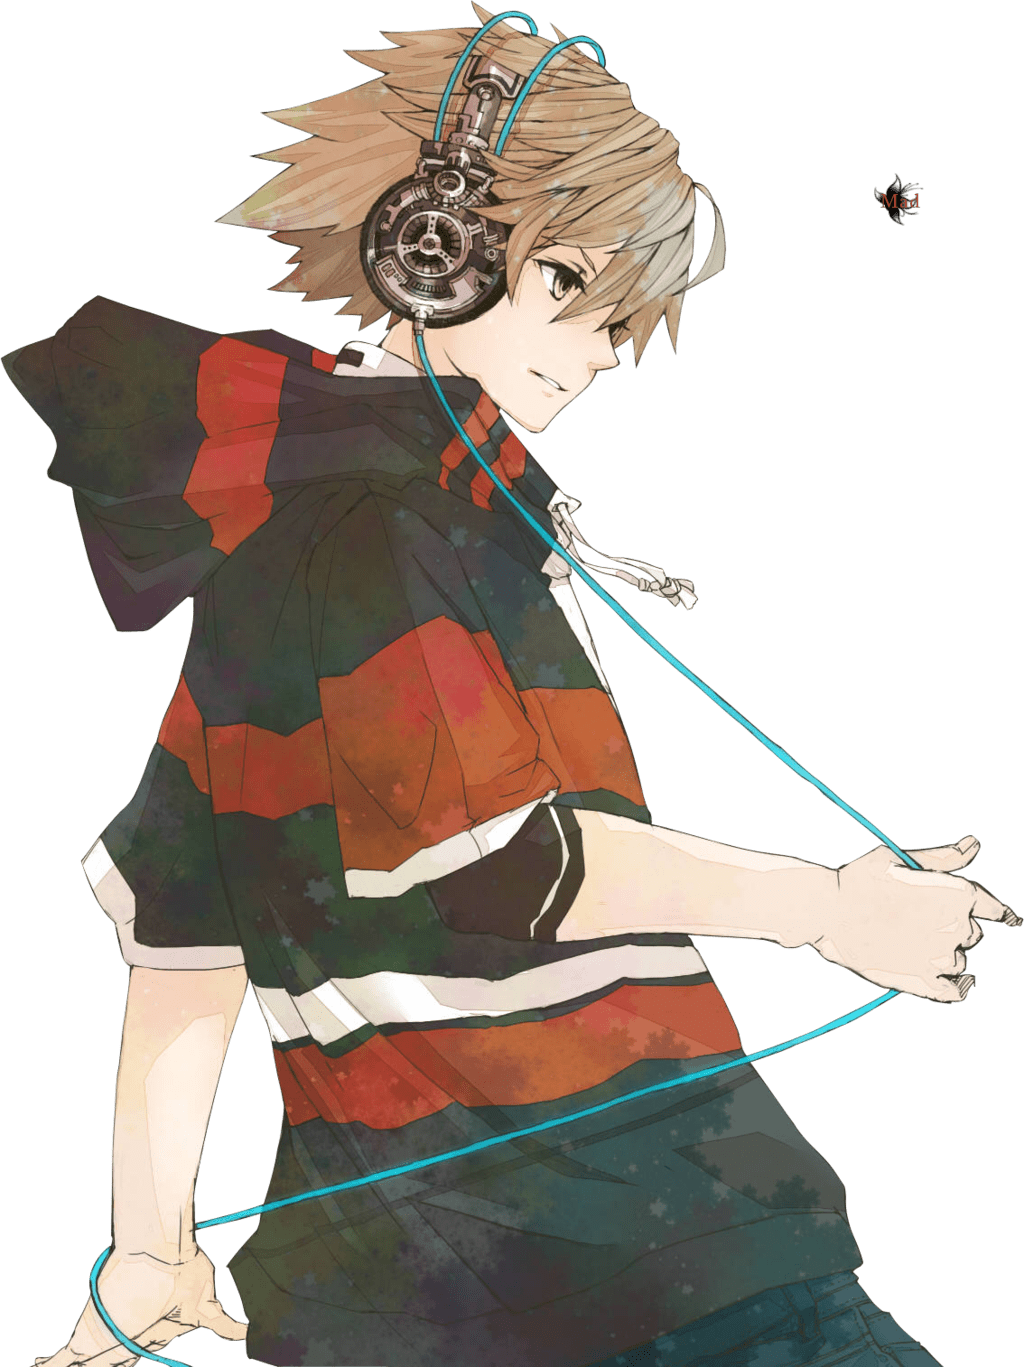 Anime Character Listening To Music : anime, character, listening, music, Anime, Listening, Music, Image, PurePNG, Transparent, Library